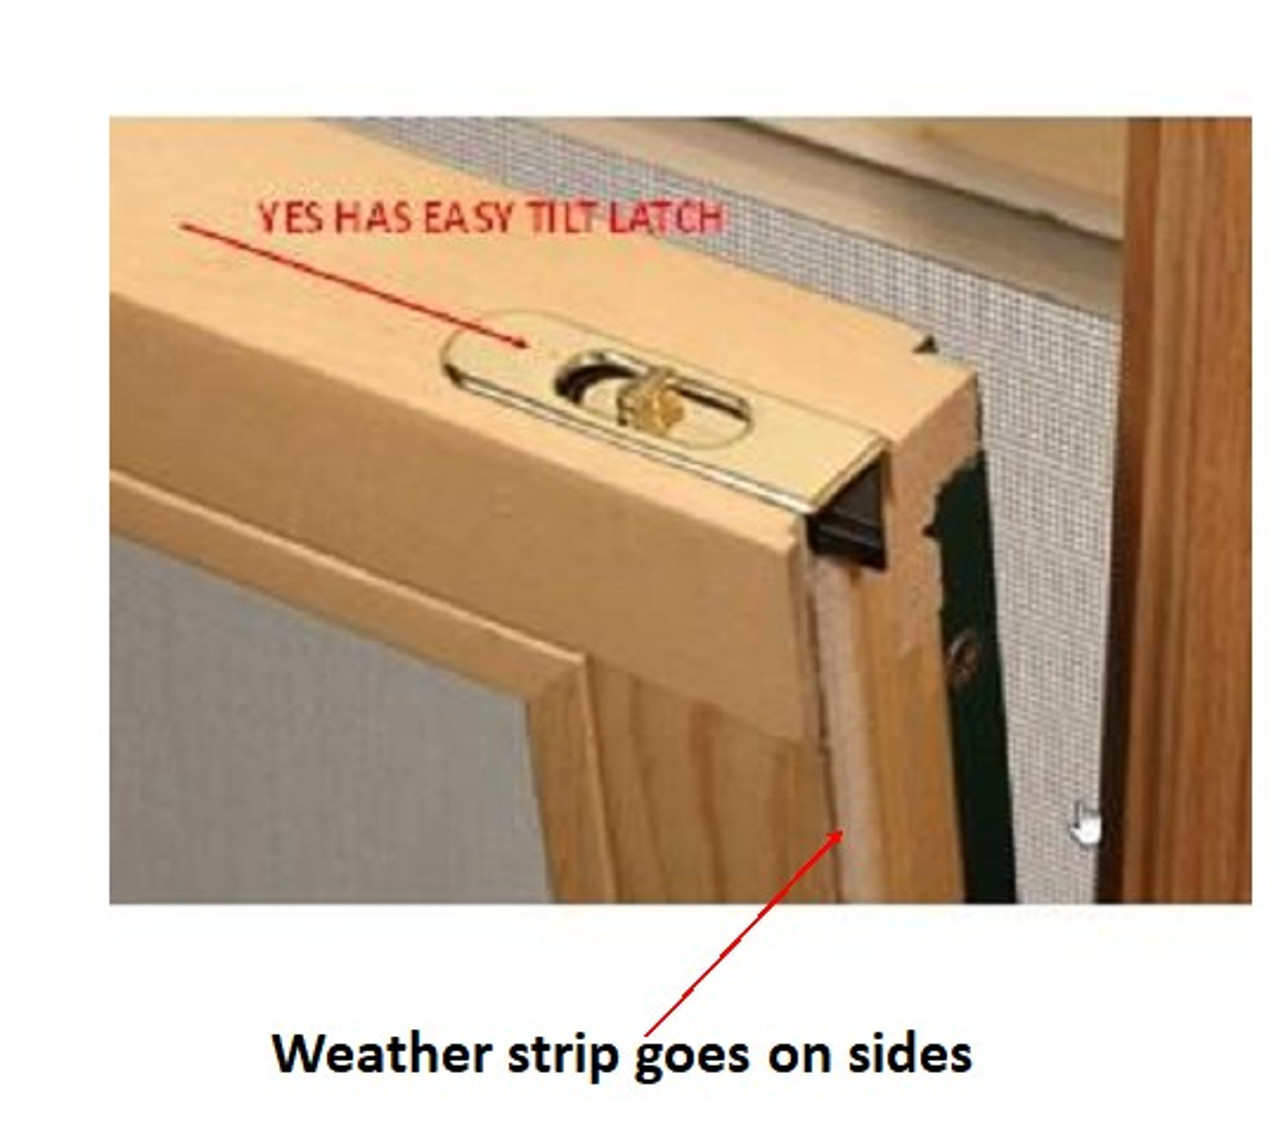 Semco DCS easy tilt  Double hung replacement pile weather strip for side of sash for units manufactured from 1996 to December  31st 2019 ( includes 4 pieces 36'' each)